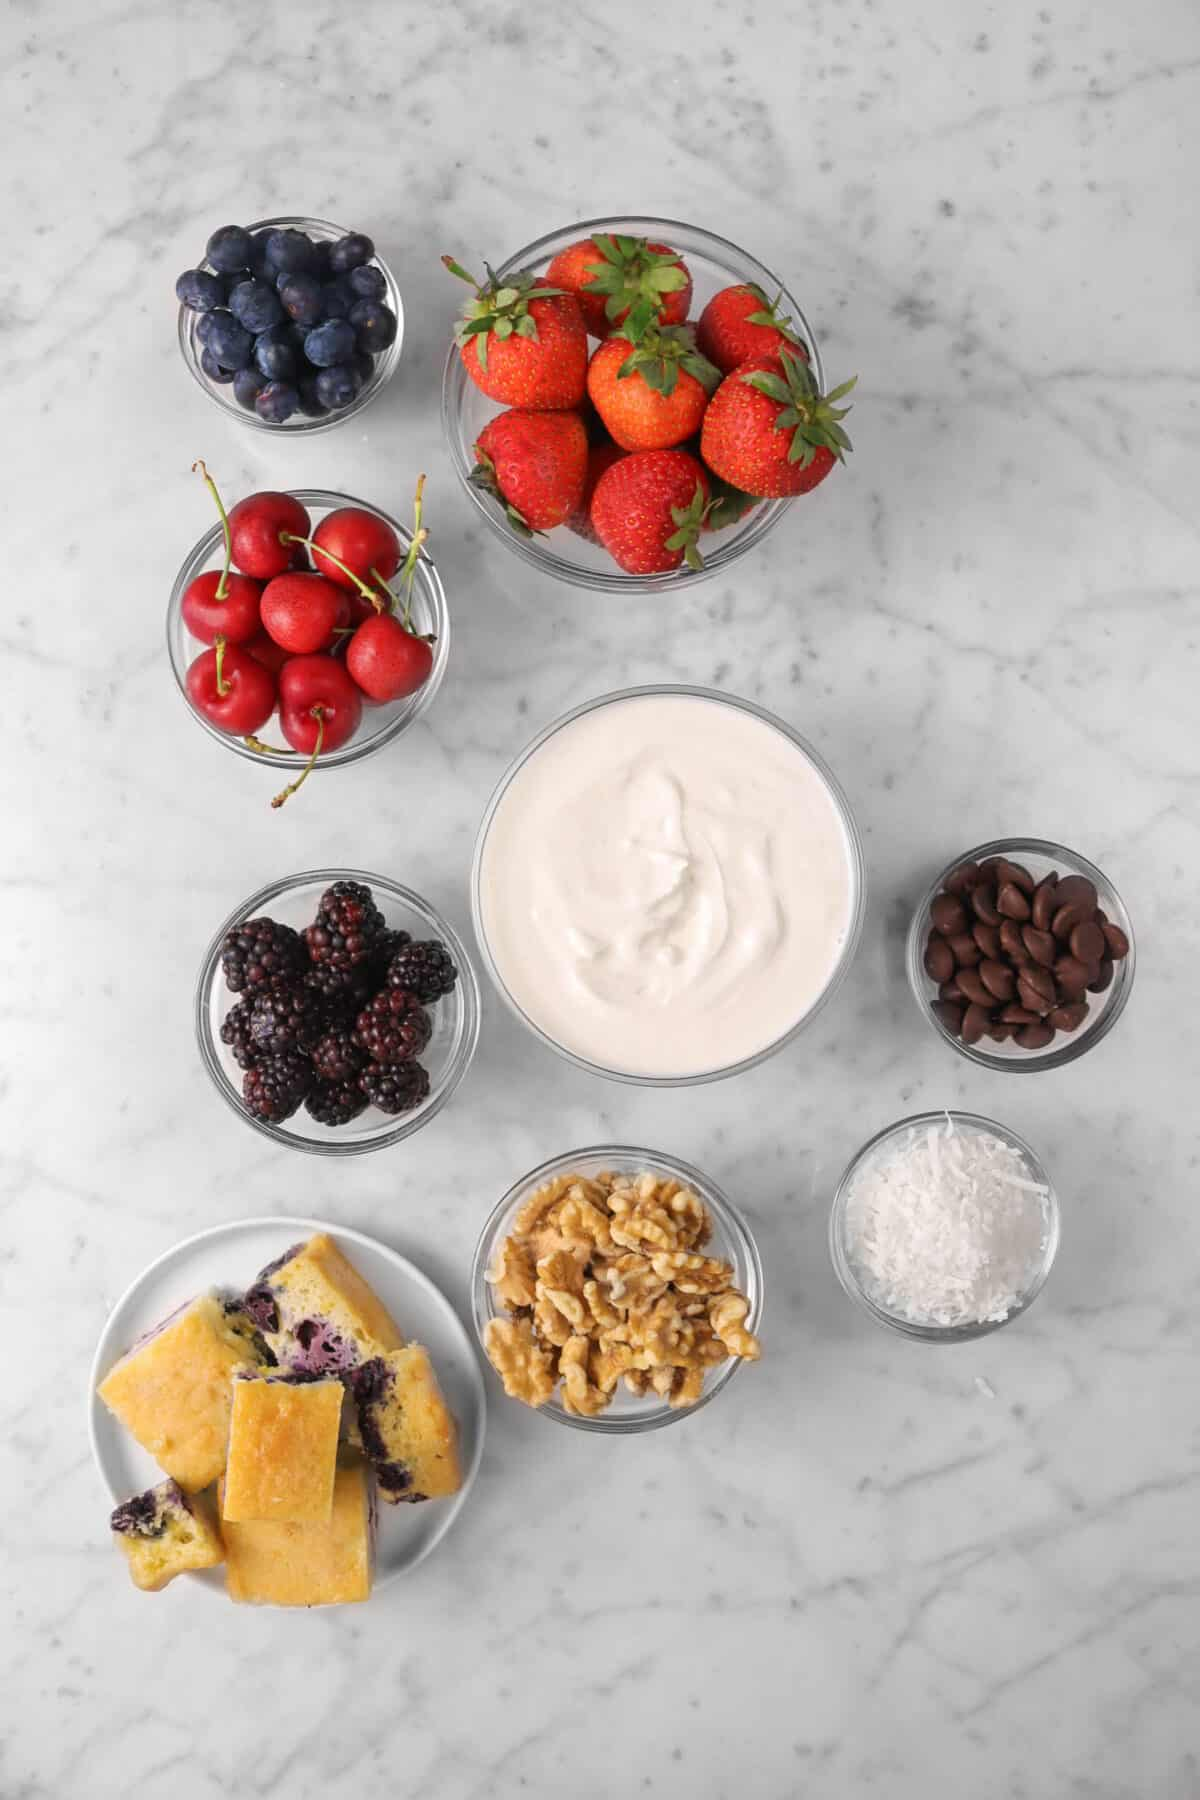 blueberries, strawberries, cherries, baclberries, blueberry cake, walnuts, yogurt, coconut, and chocolate on a marble counter